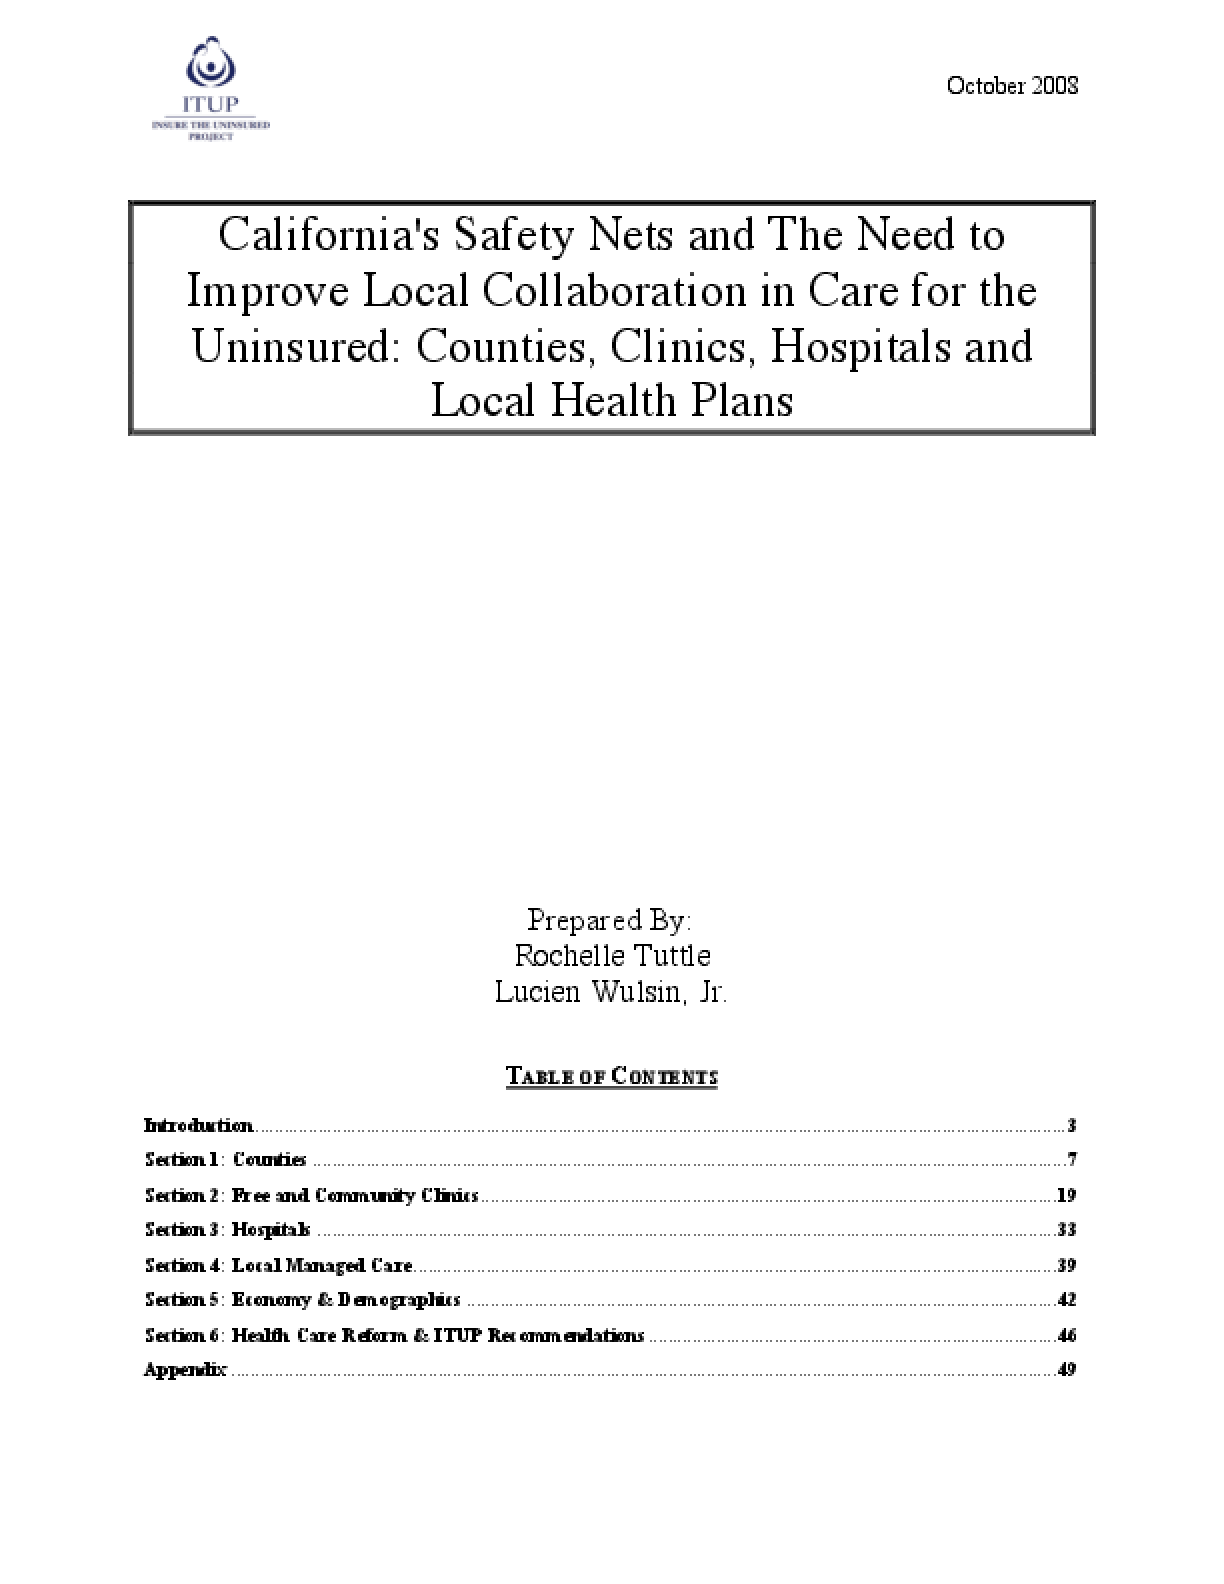 California's Safety Nets and the Need to Improve Local Collaboration in Care for the Uninsured: Counties, Clinics, Hospitals and Local Health Plans